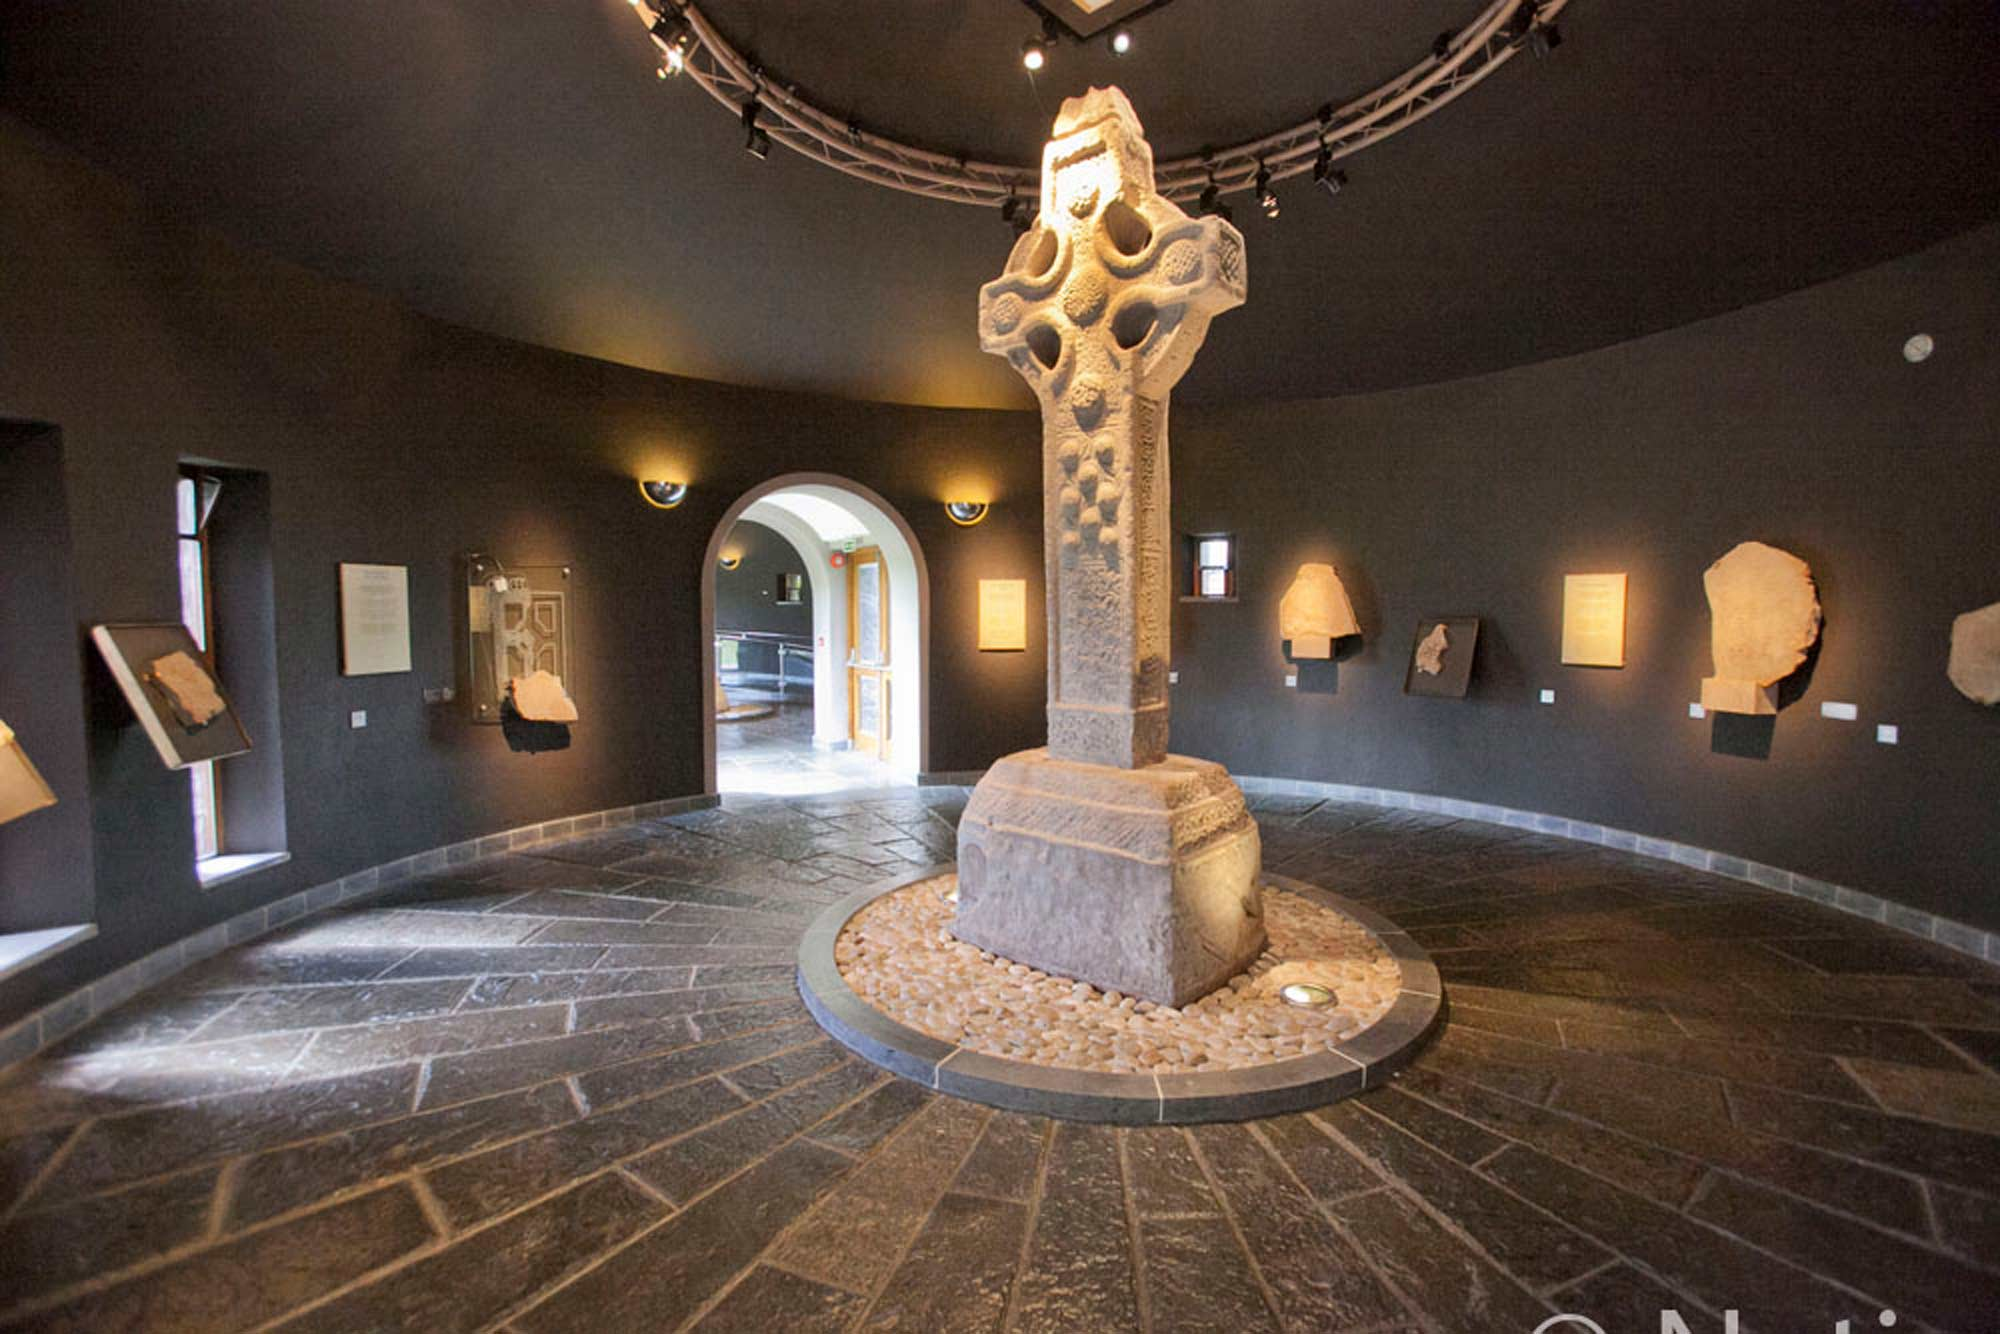 The original High Crosses and a selection of the graveslabs are now on display in a purpose built exhibition area while replica crosses are on display onsite.